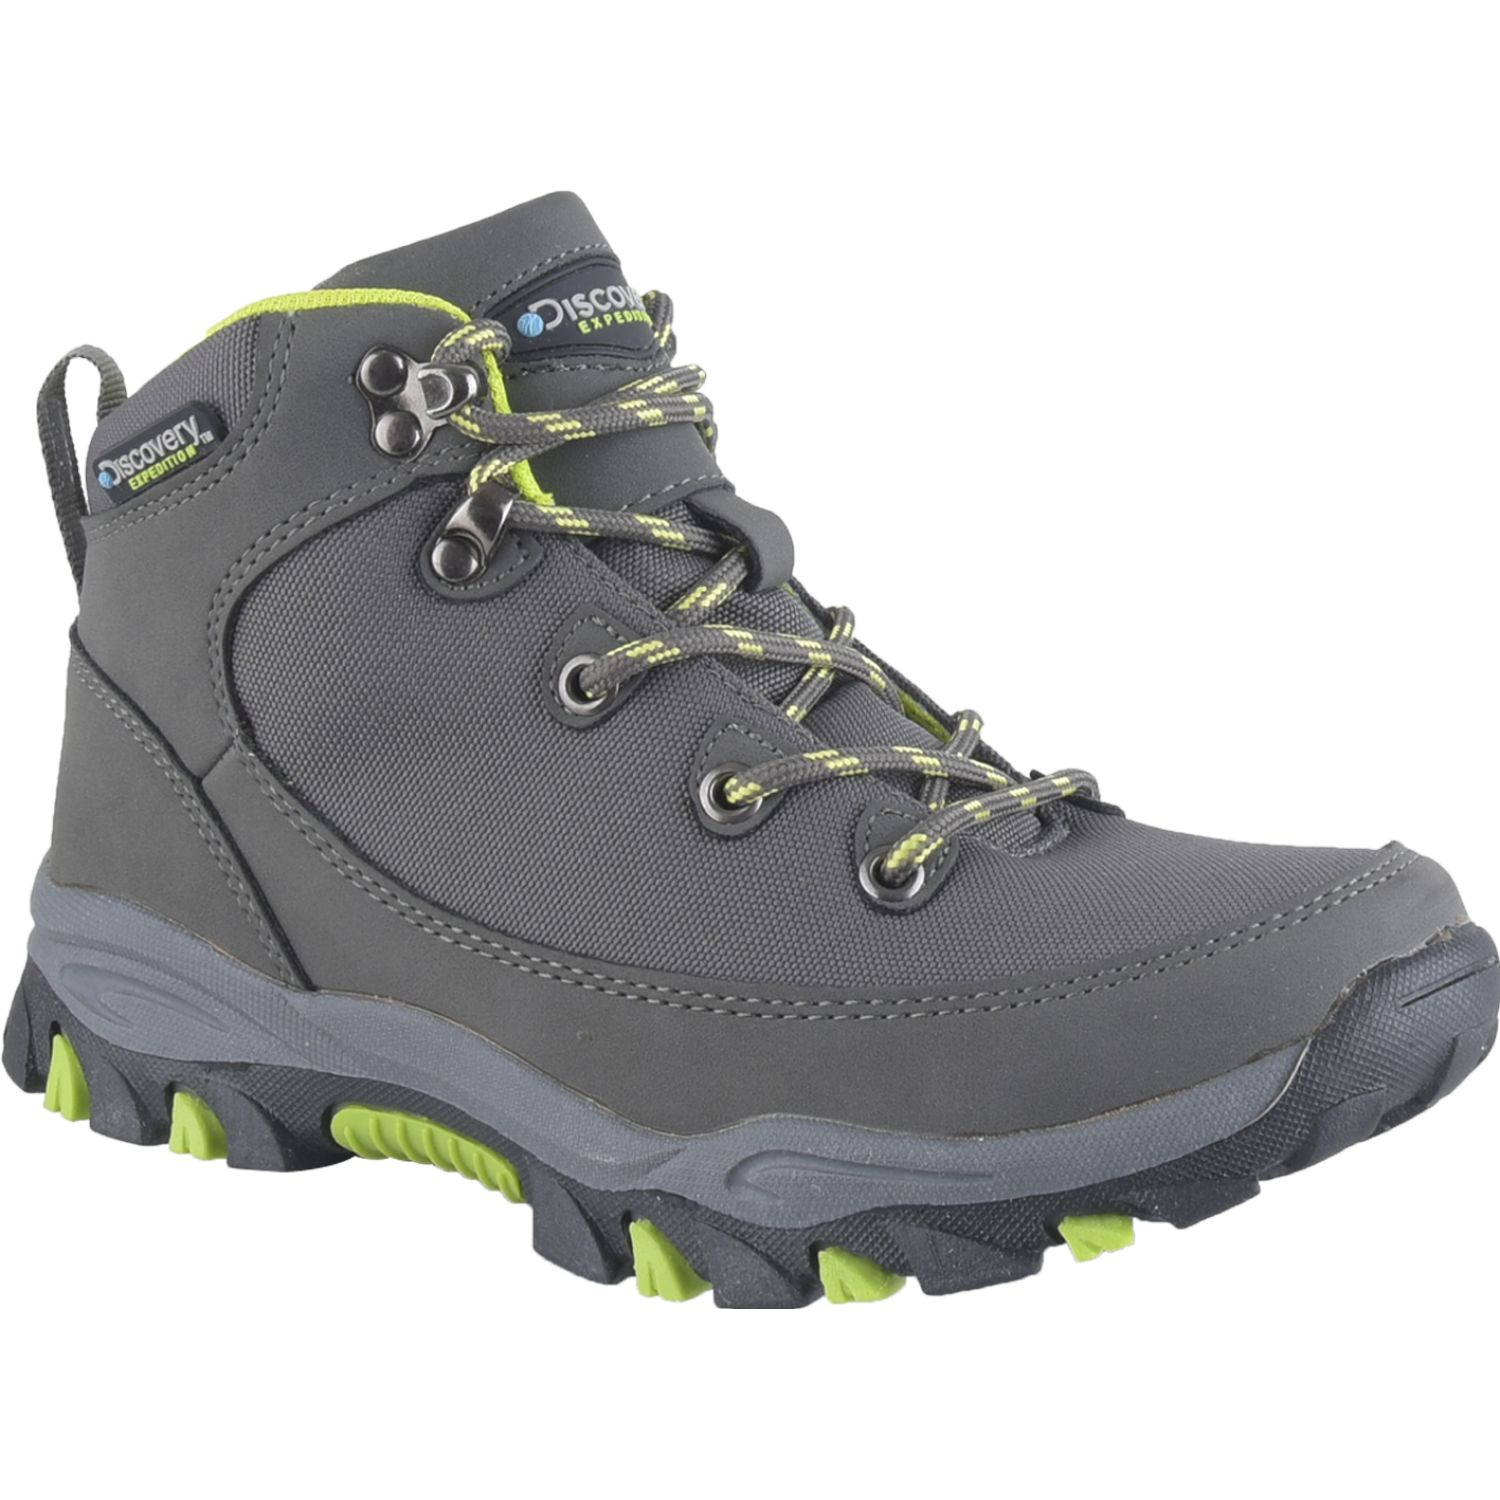 DISCOVERY EXPEDITION BYRON238 Gris Calzado hiking